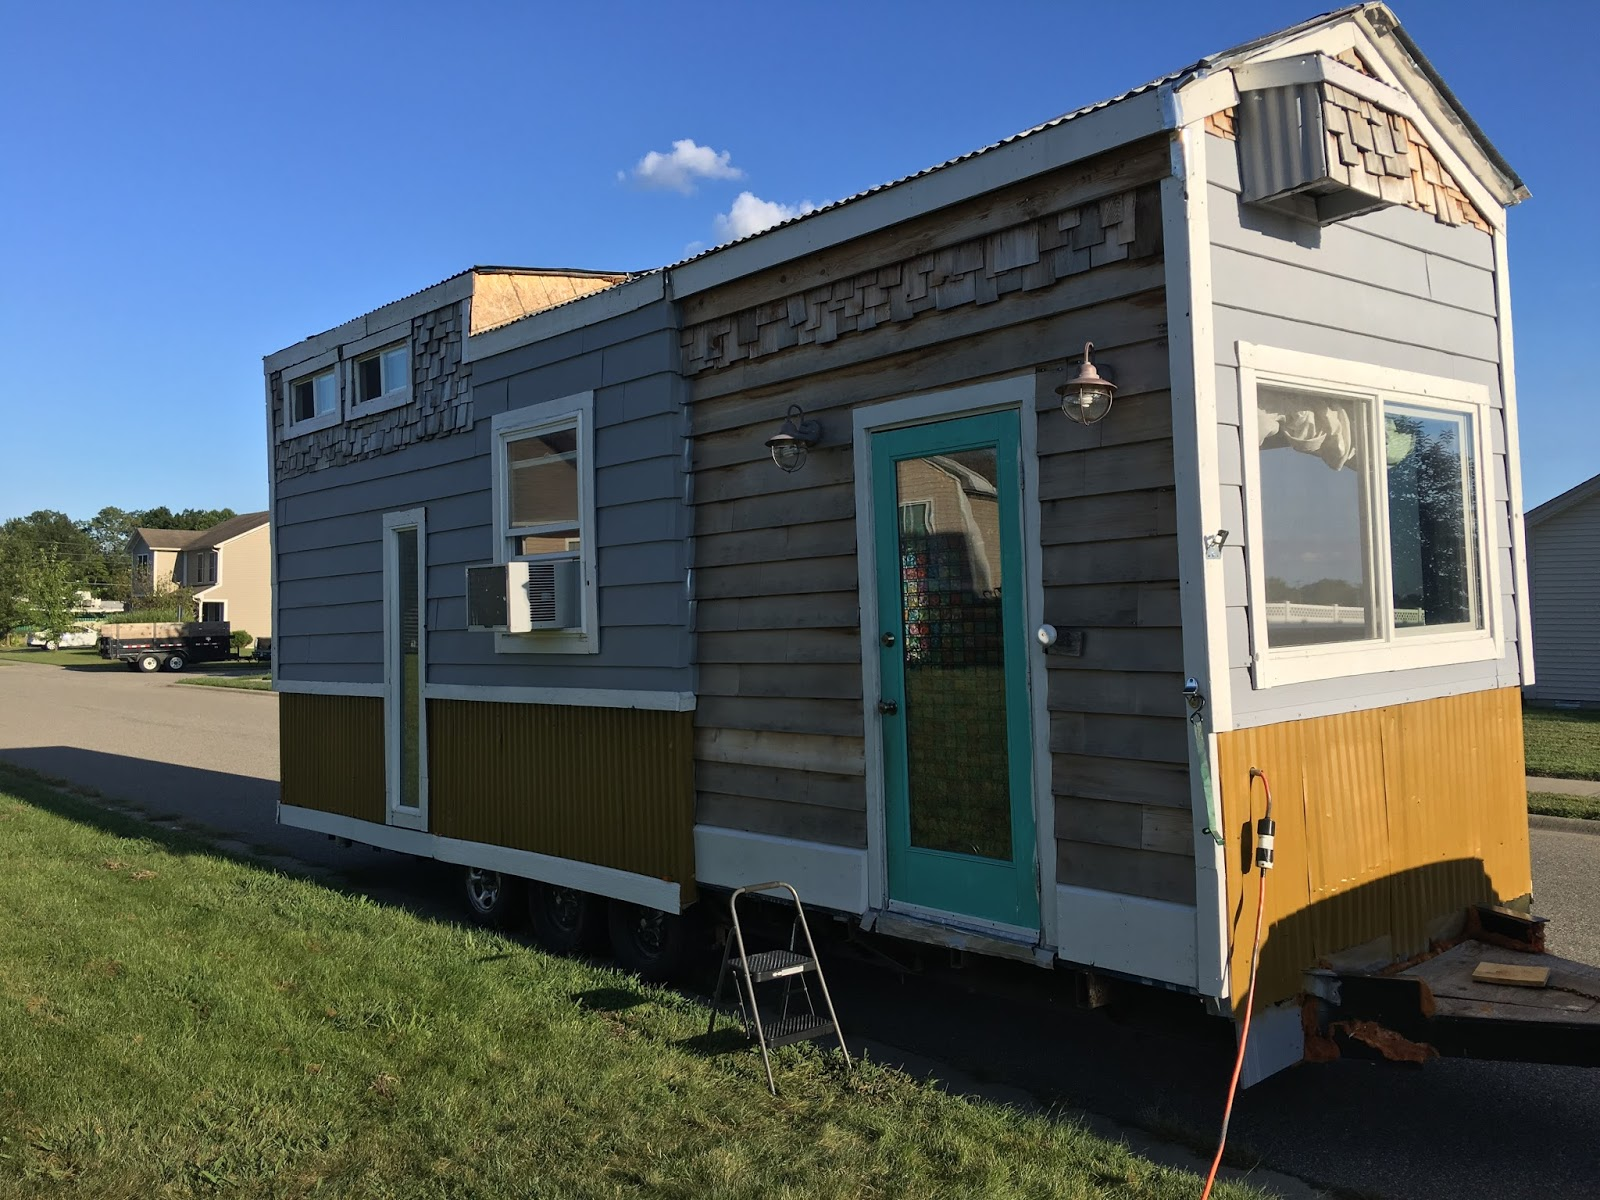 Ikea Indiana Tiny House Town: Southern Indiana Tiny House (299 Sq Ft)